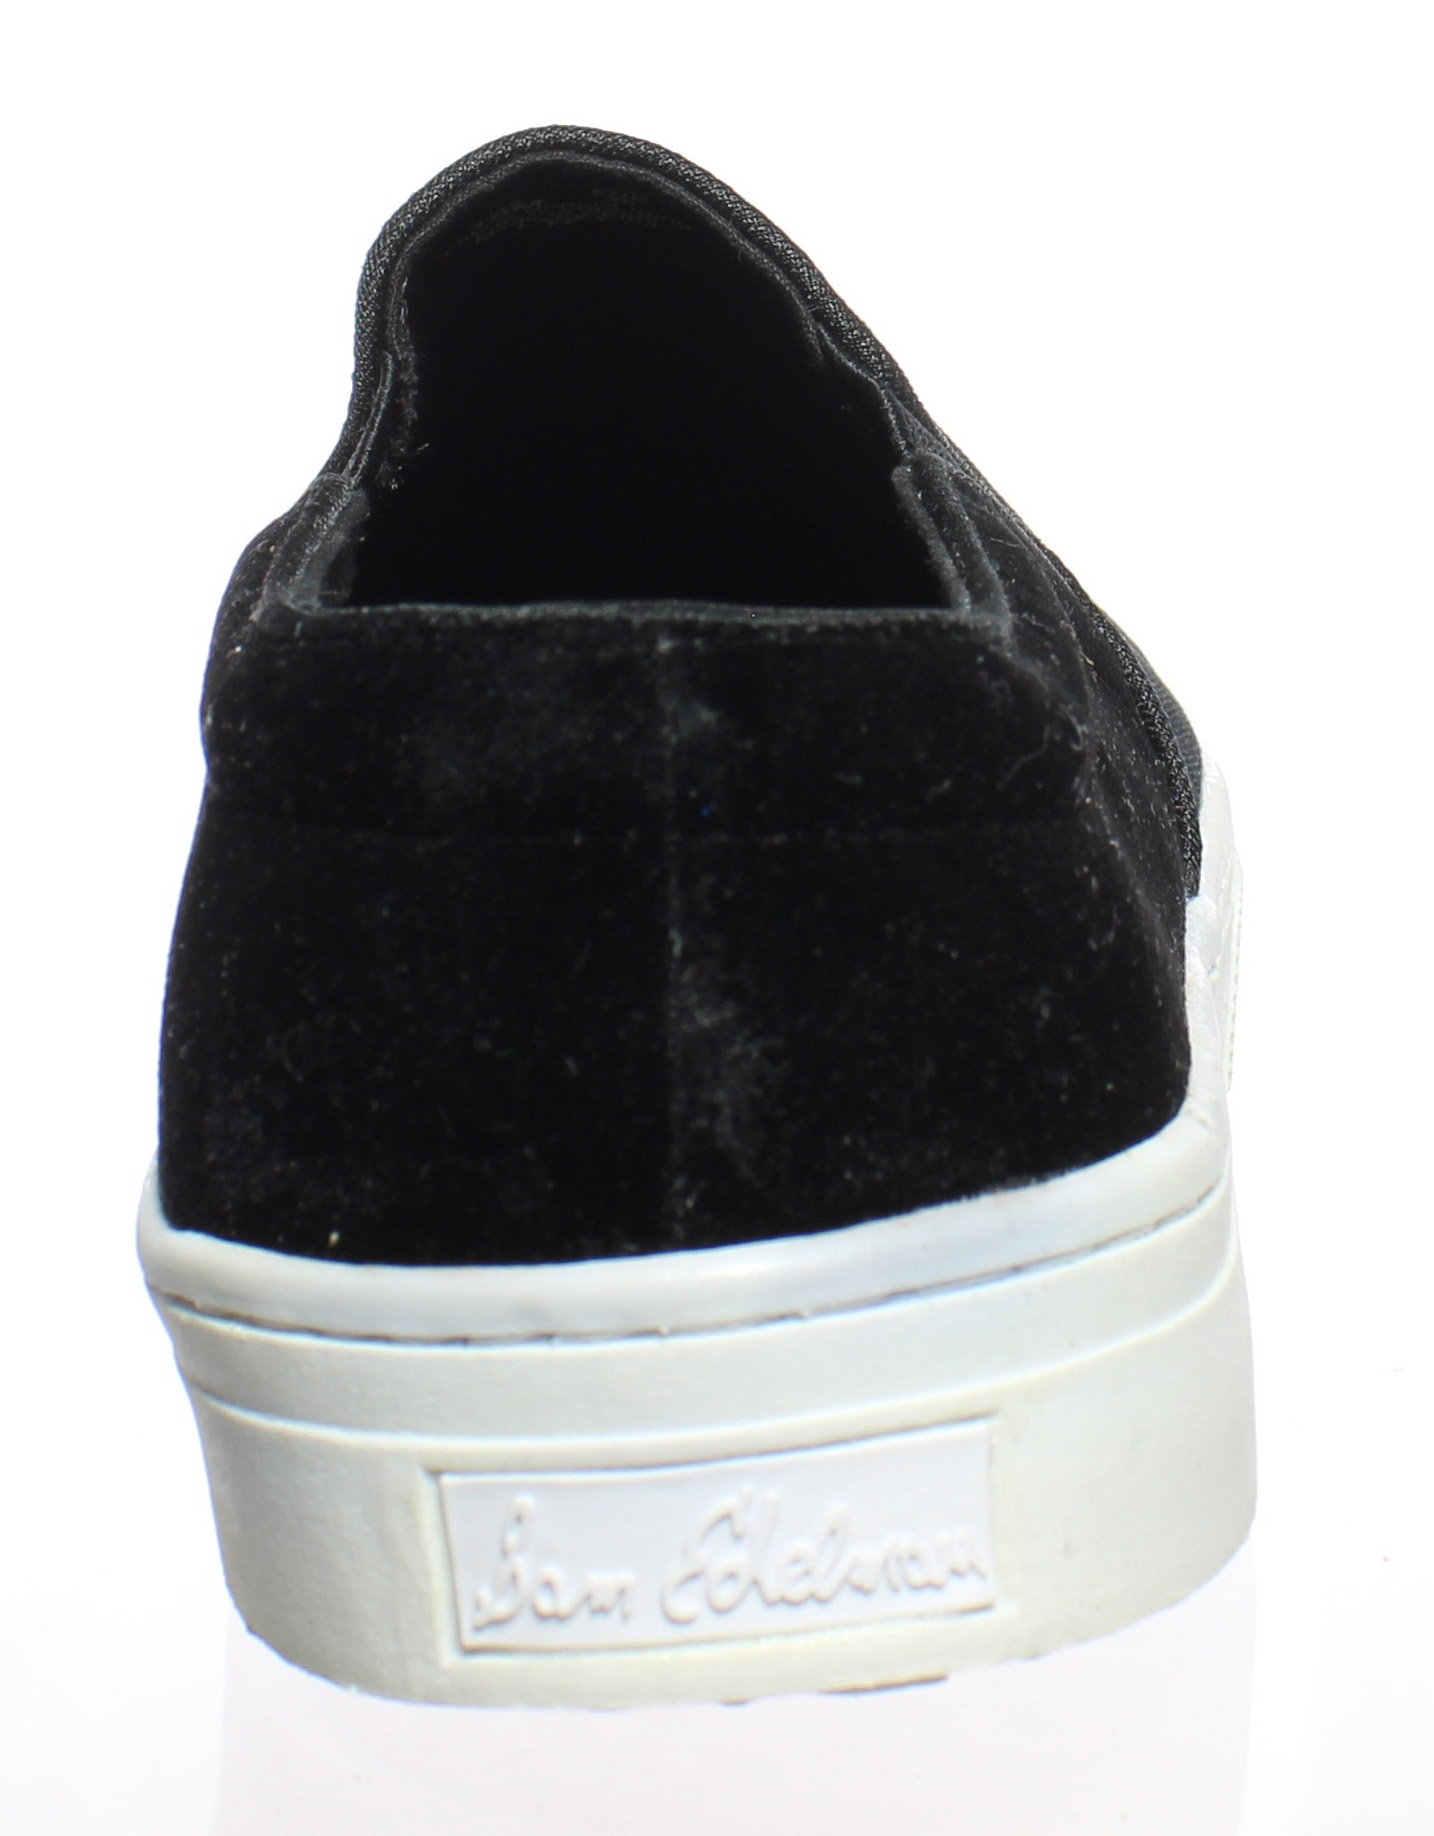 359ac0e9112d ... Picture 3 of 4  Picture 4 of 4. Sam Edelman Womens Lacey Black Velvet  Loafers Size 10 ...